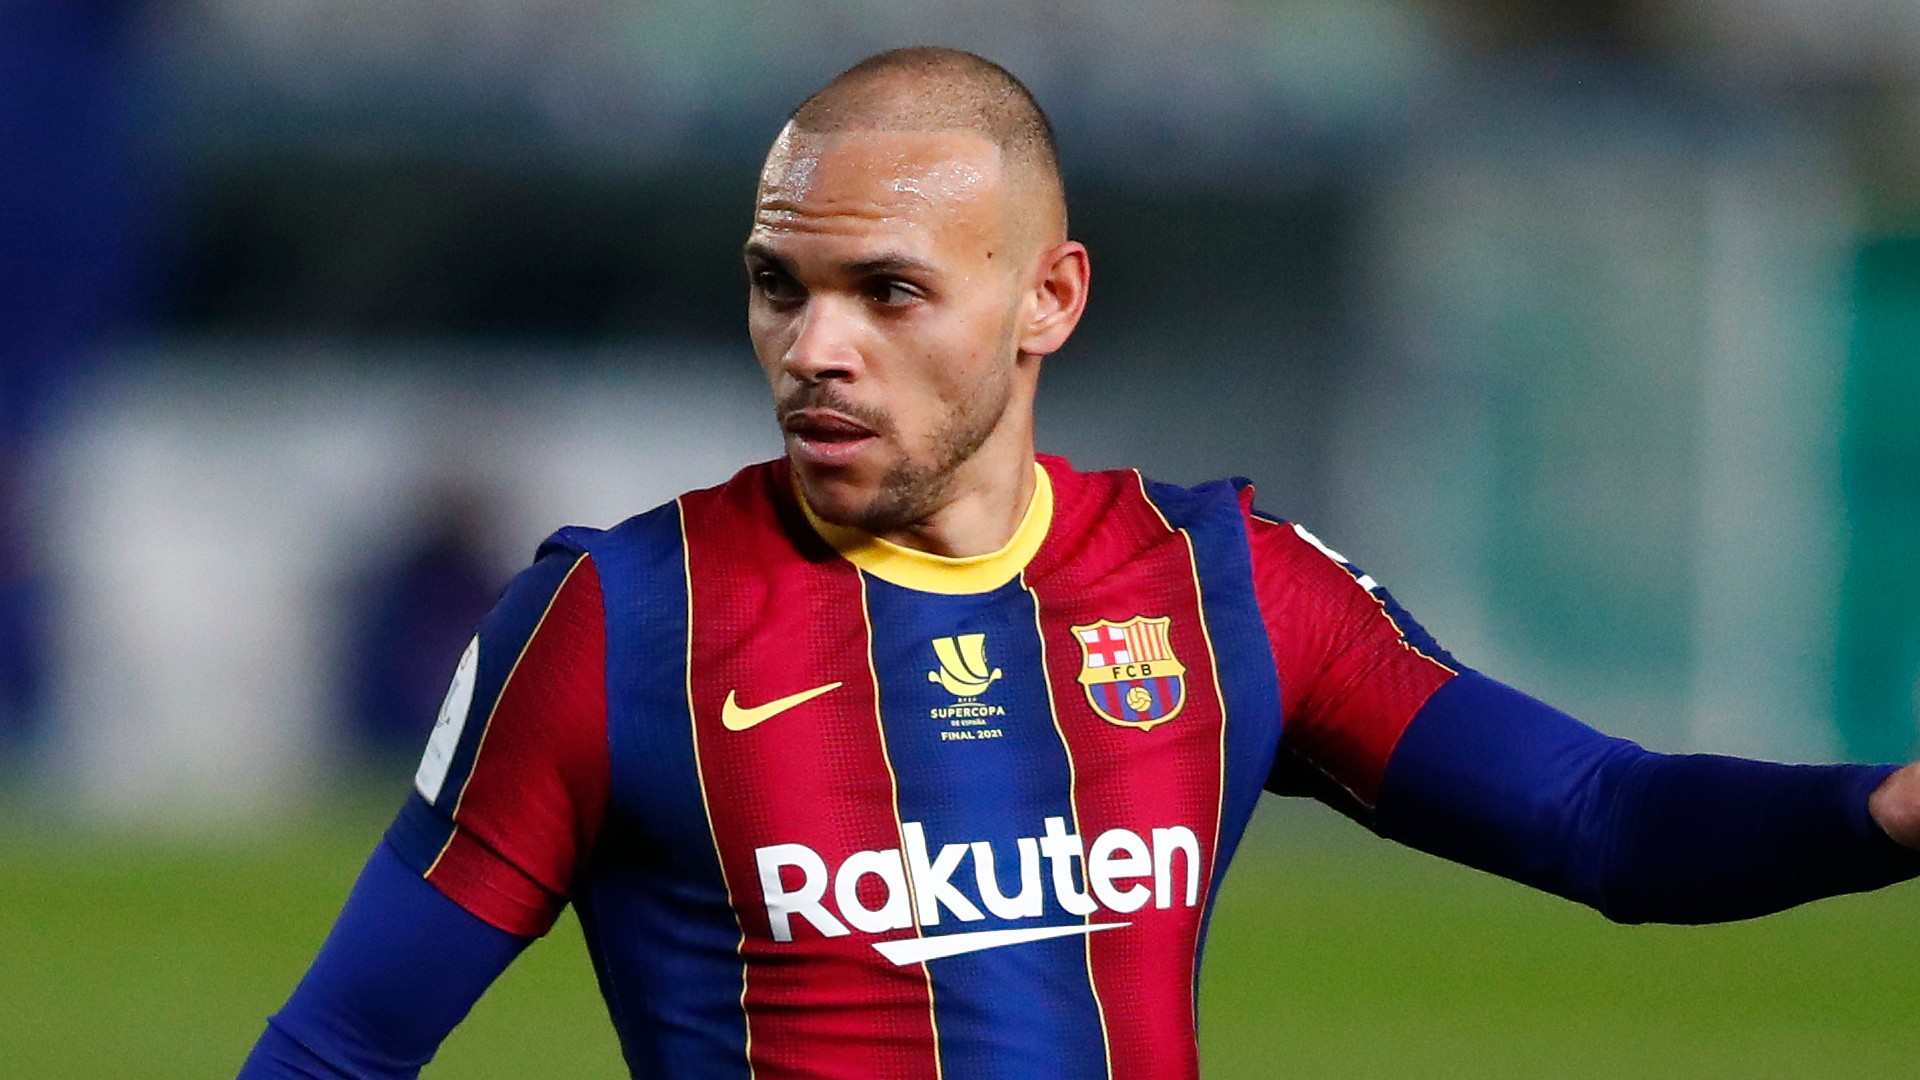 'Braithwaite will continue at Barcelona' - Denmark star's agent rubbishes talk of Wolves transfer in angry rant at Jorge Mendes